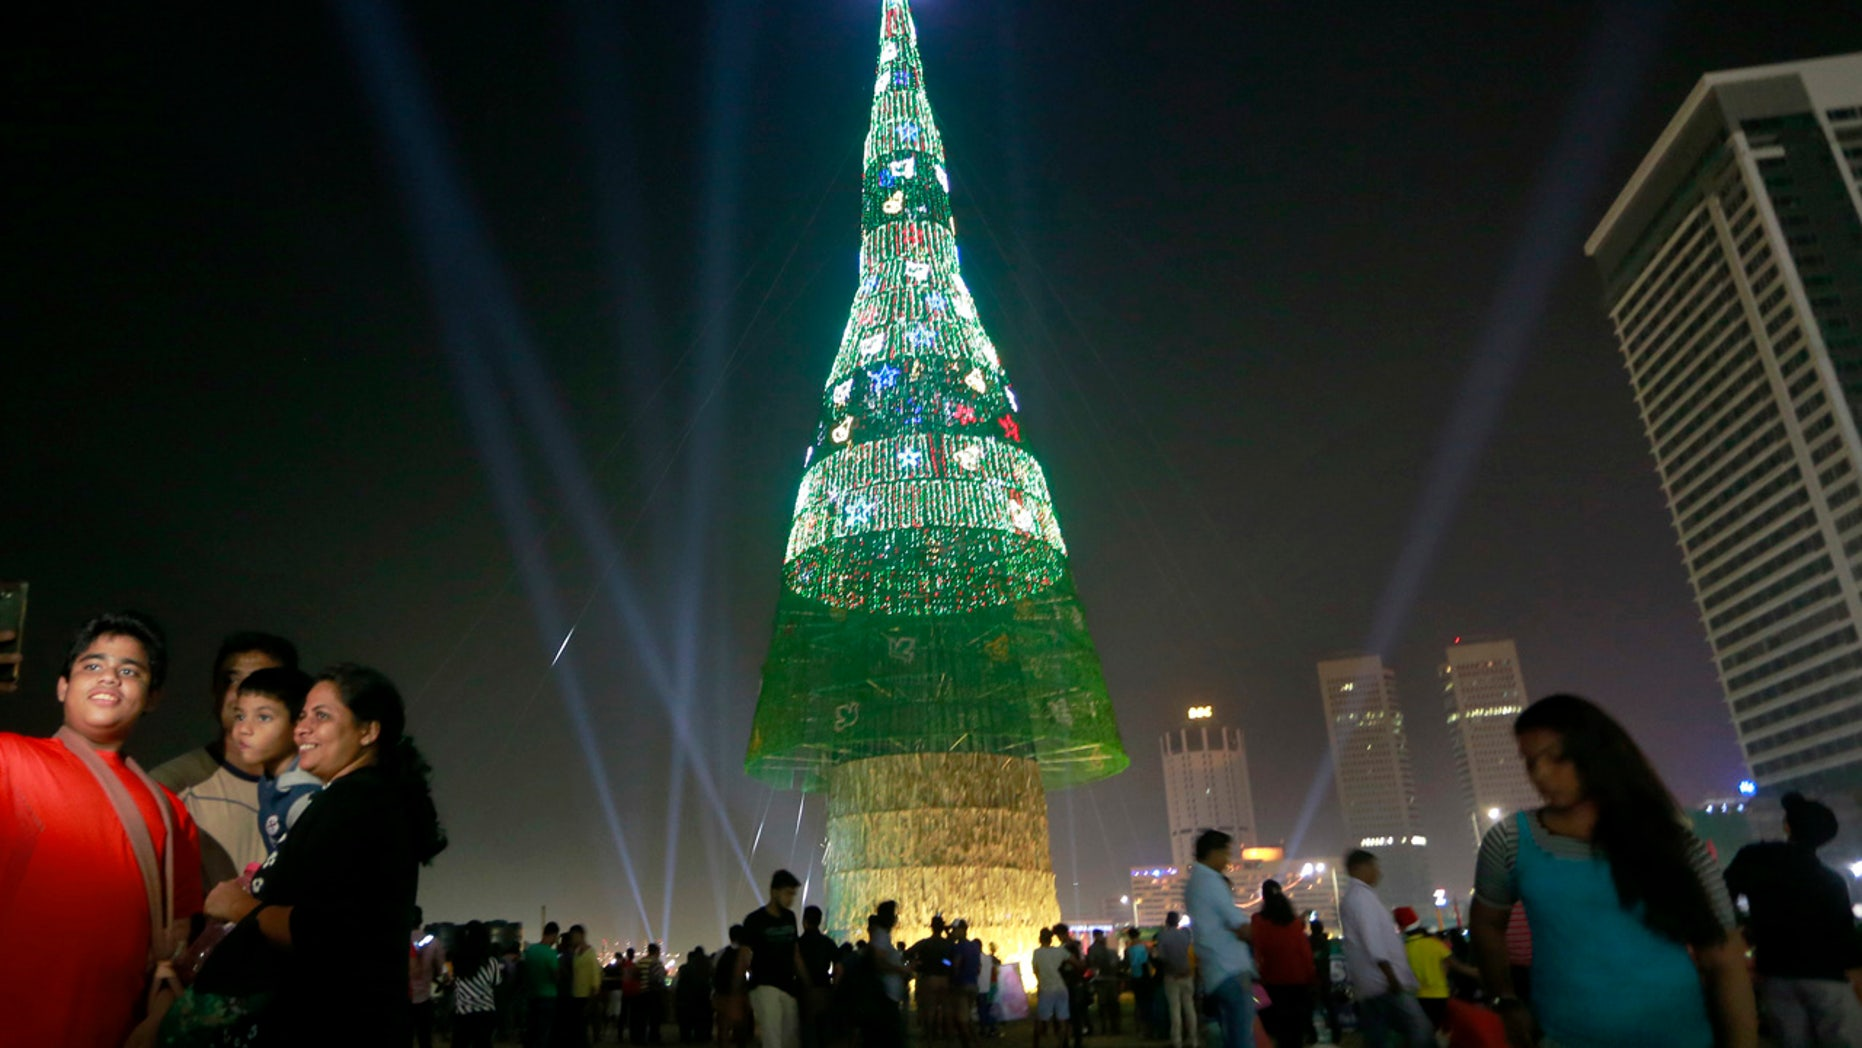 A Sri Lankan family takes photographs standing near an enormous artificial Christmas tree as others gather around it in Colombo, Sri Lanka, Saturday, Dec. 24, 2016.